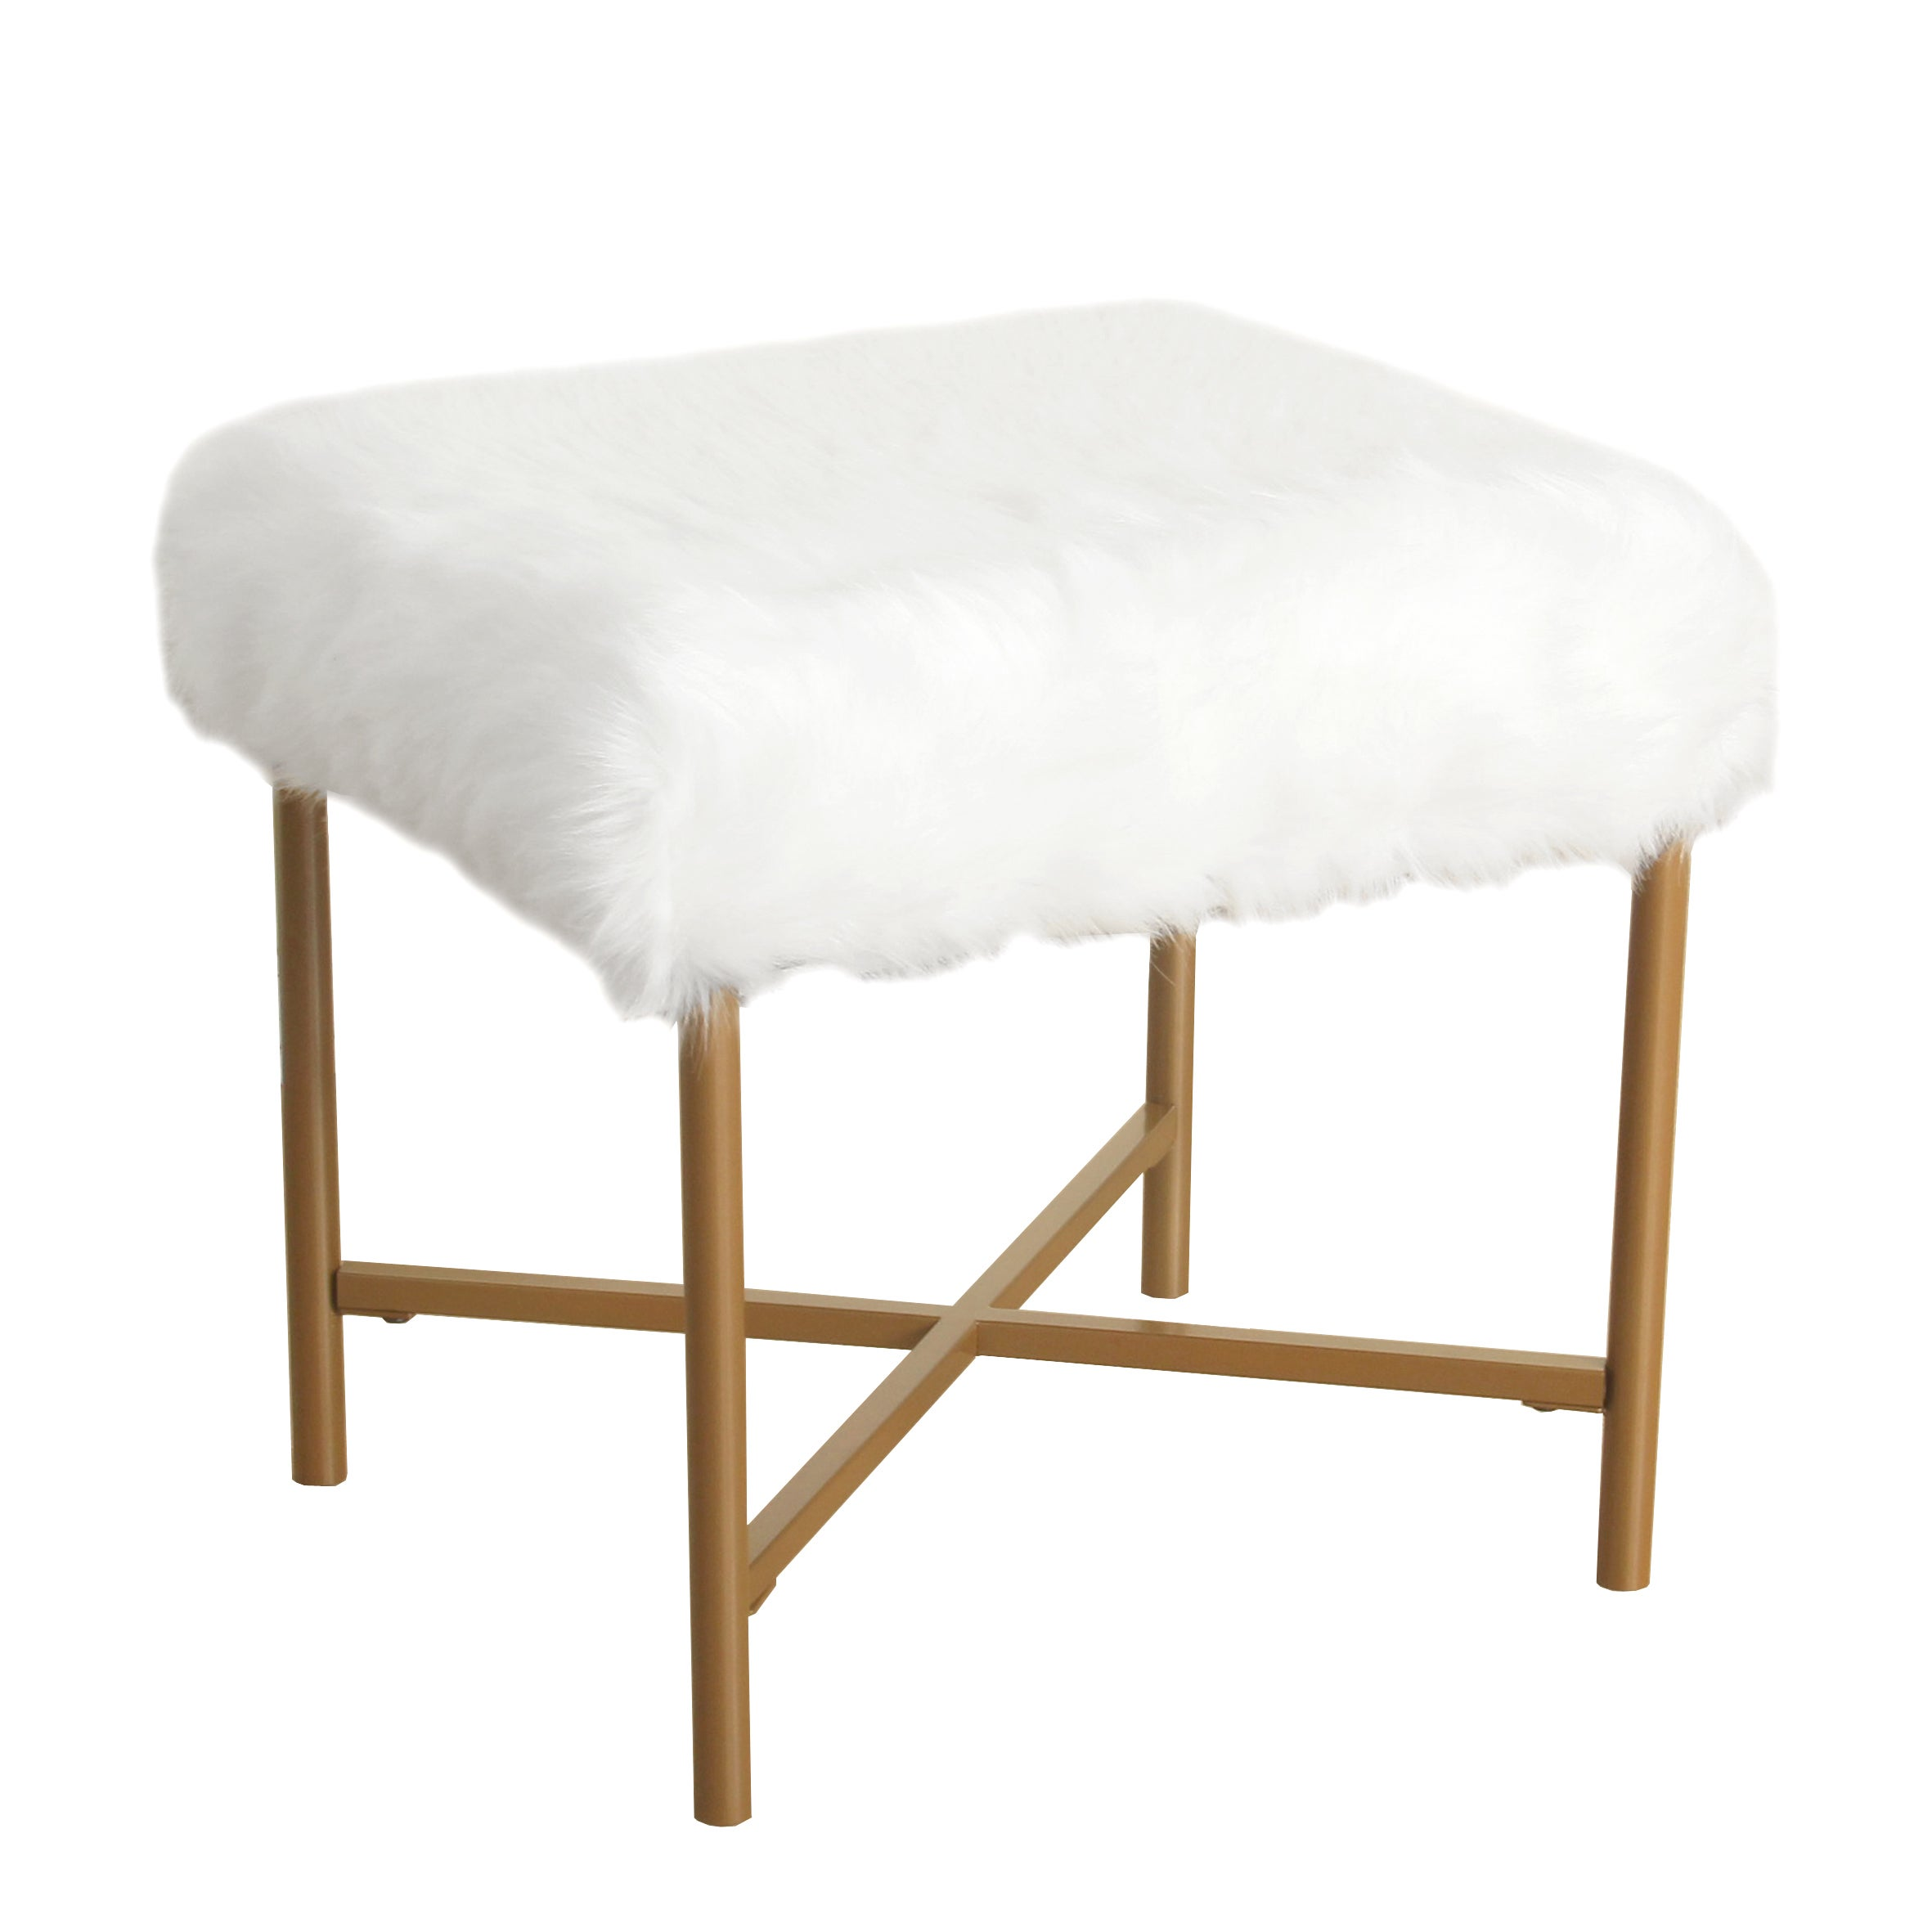 stool table side small natural timber square stools shop